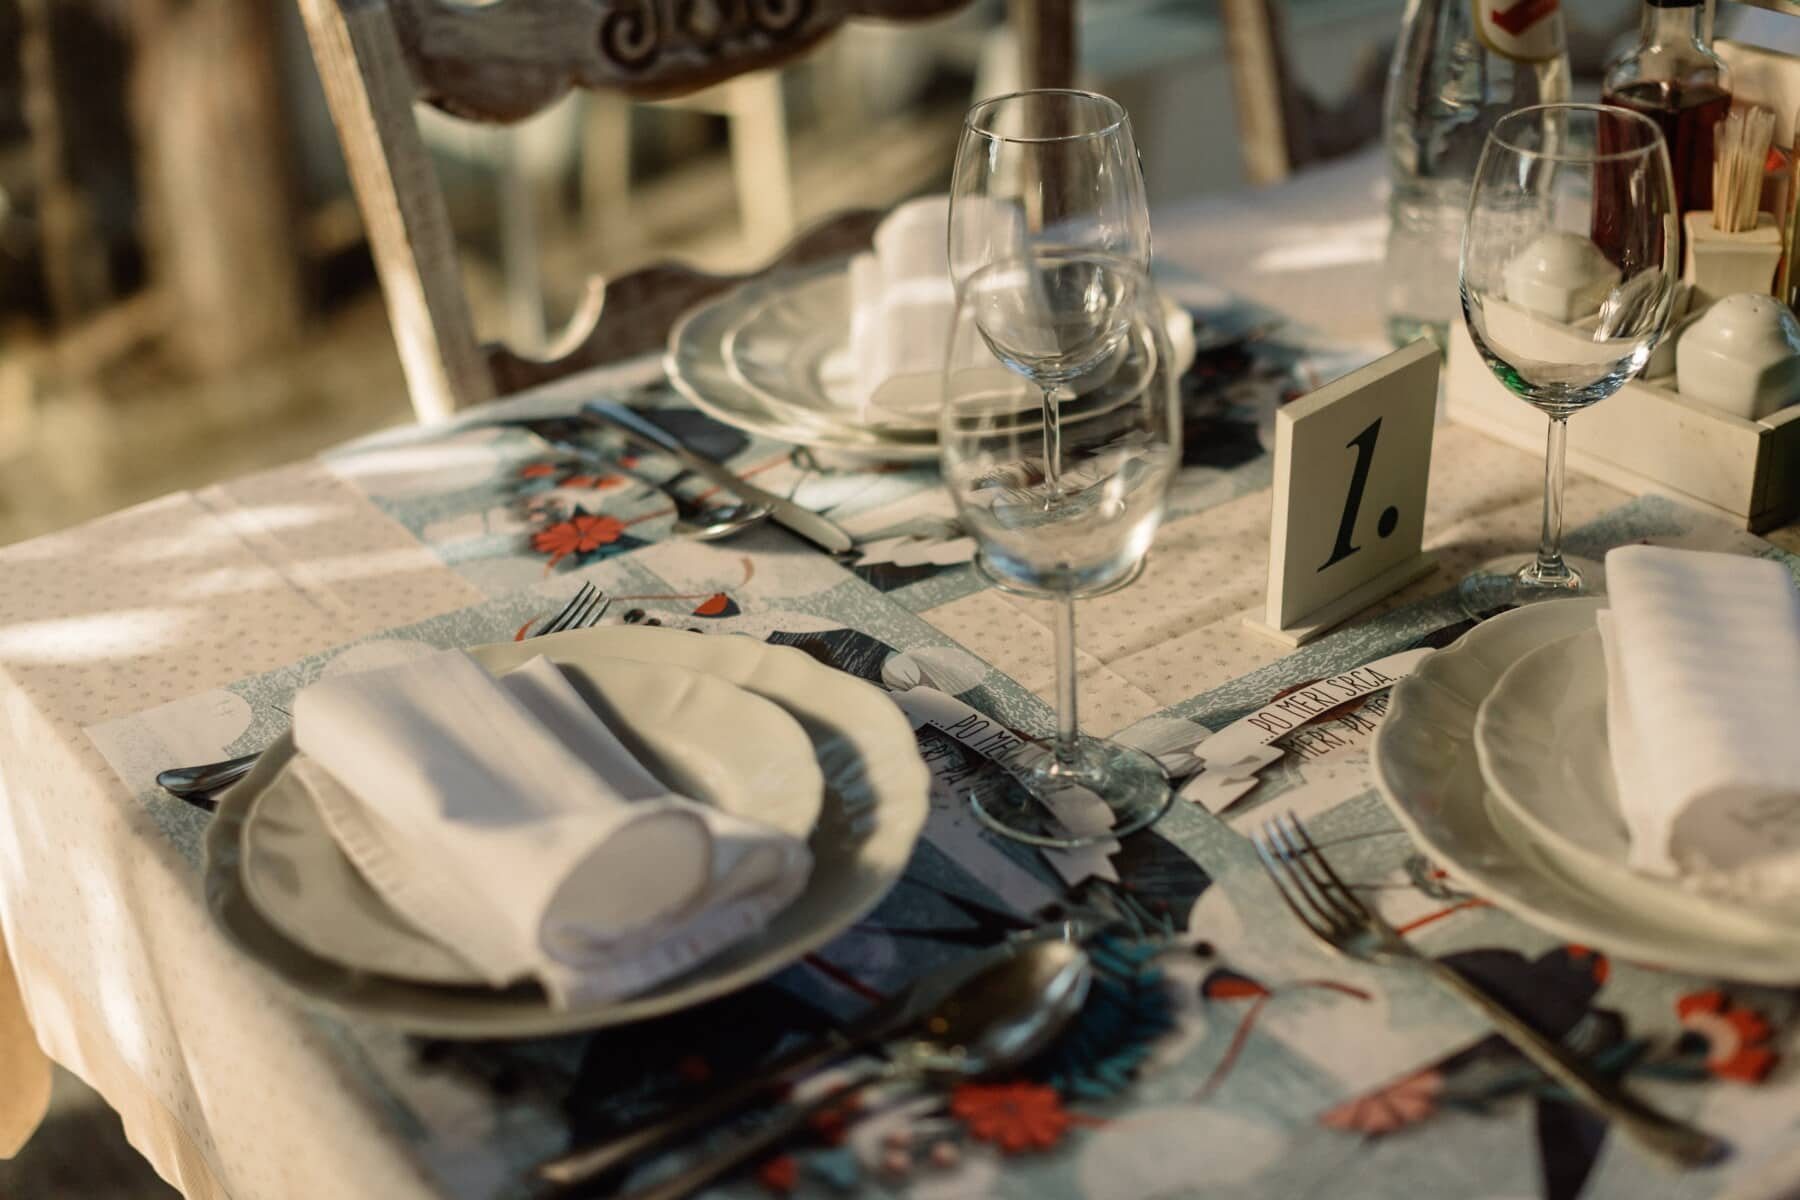 table, dining area, glass, napkin, cutlery, tableware, flatware, dining, restaurant, knife